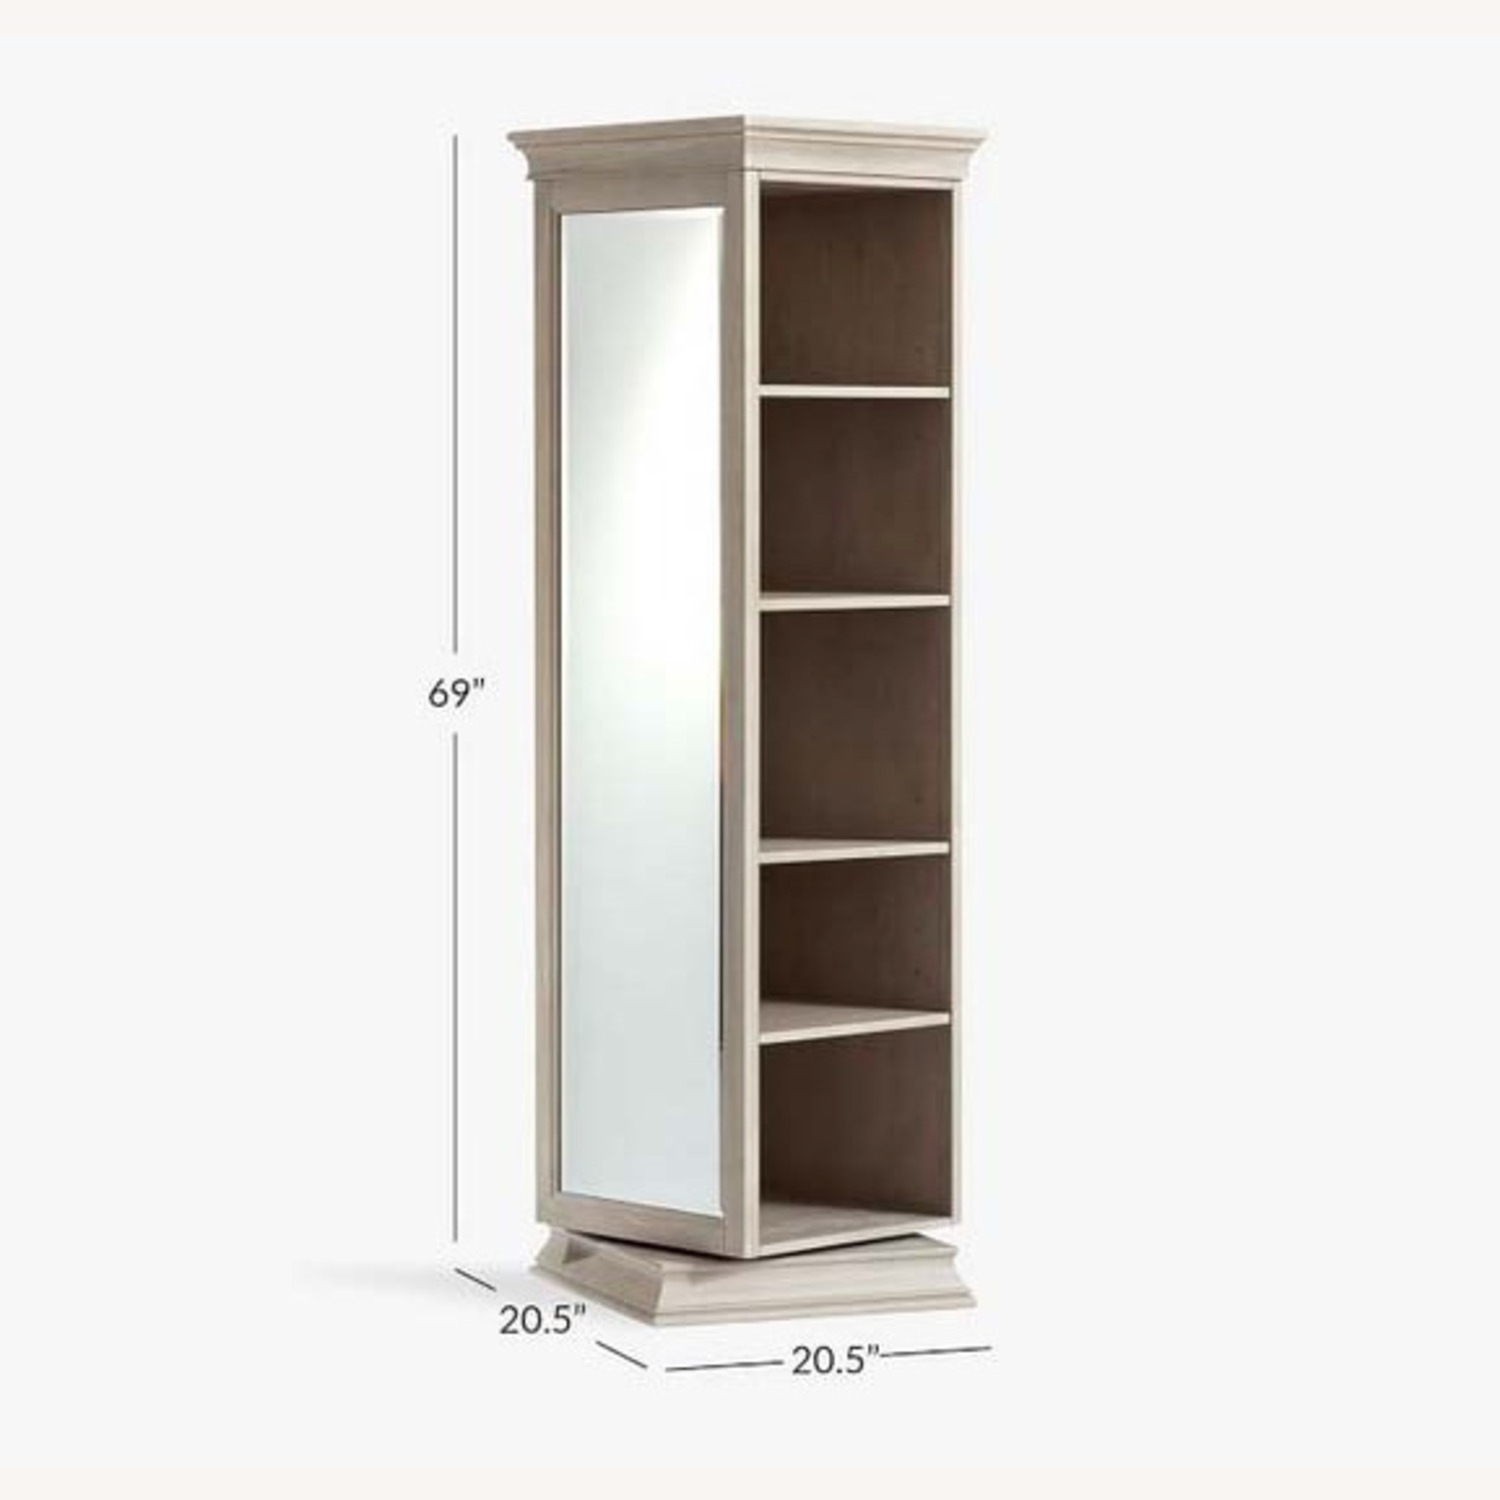 Pottery Barn Display-It Rotating Bookcase w/Mirror - image-9